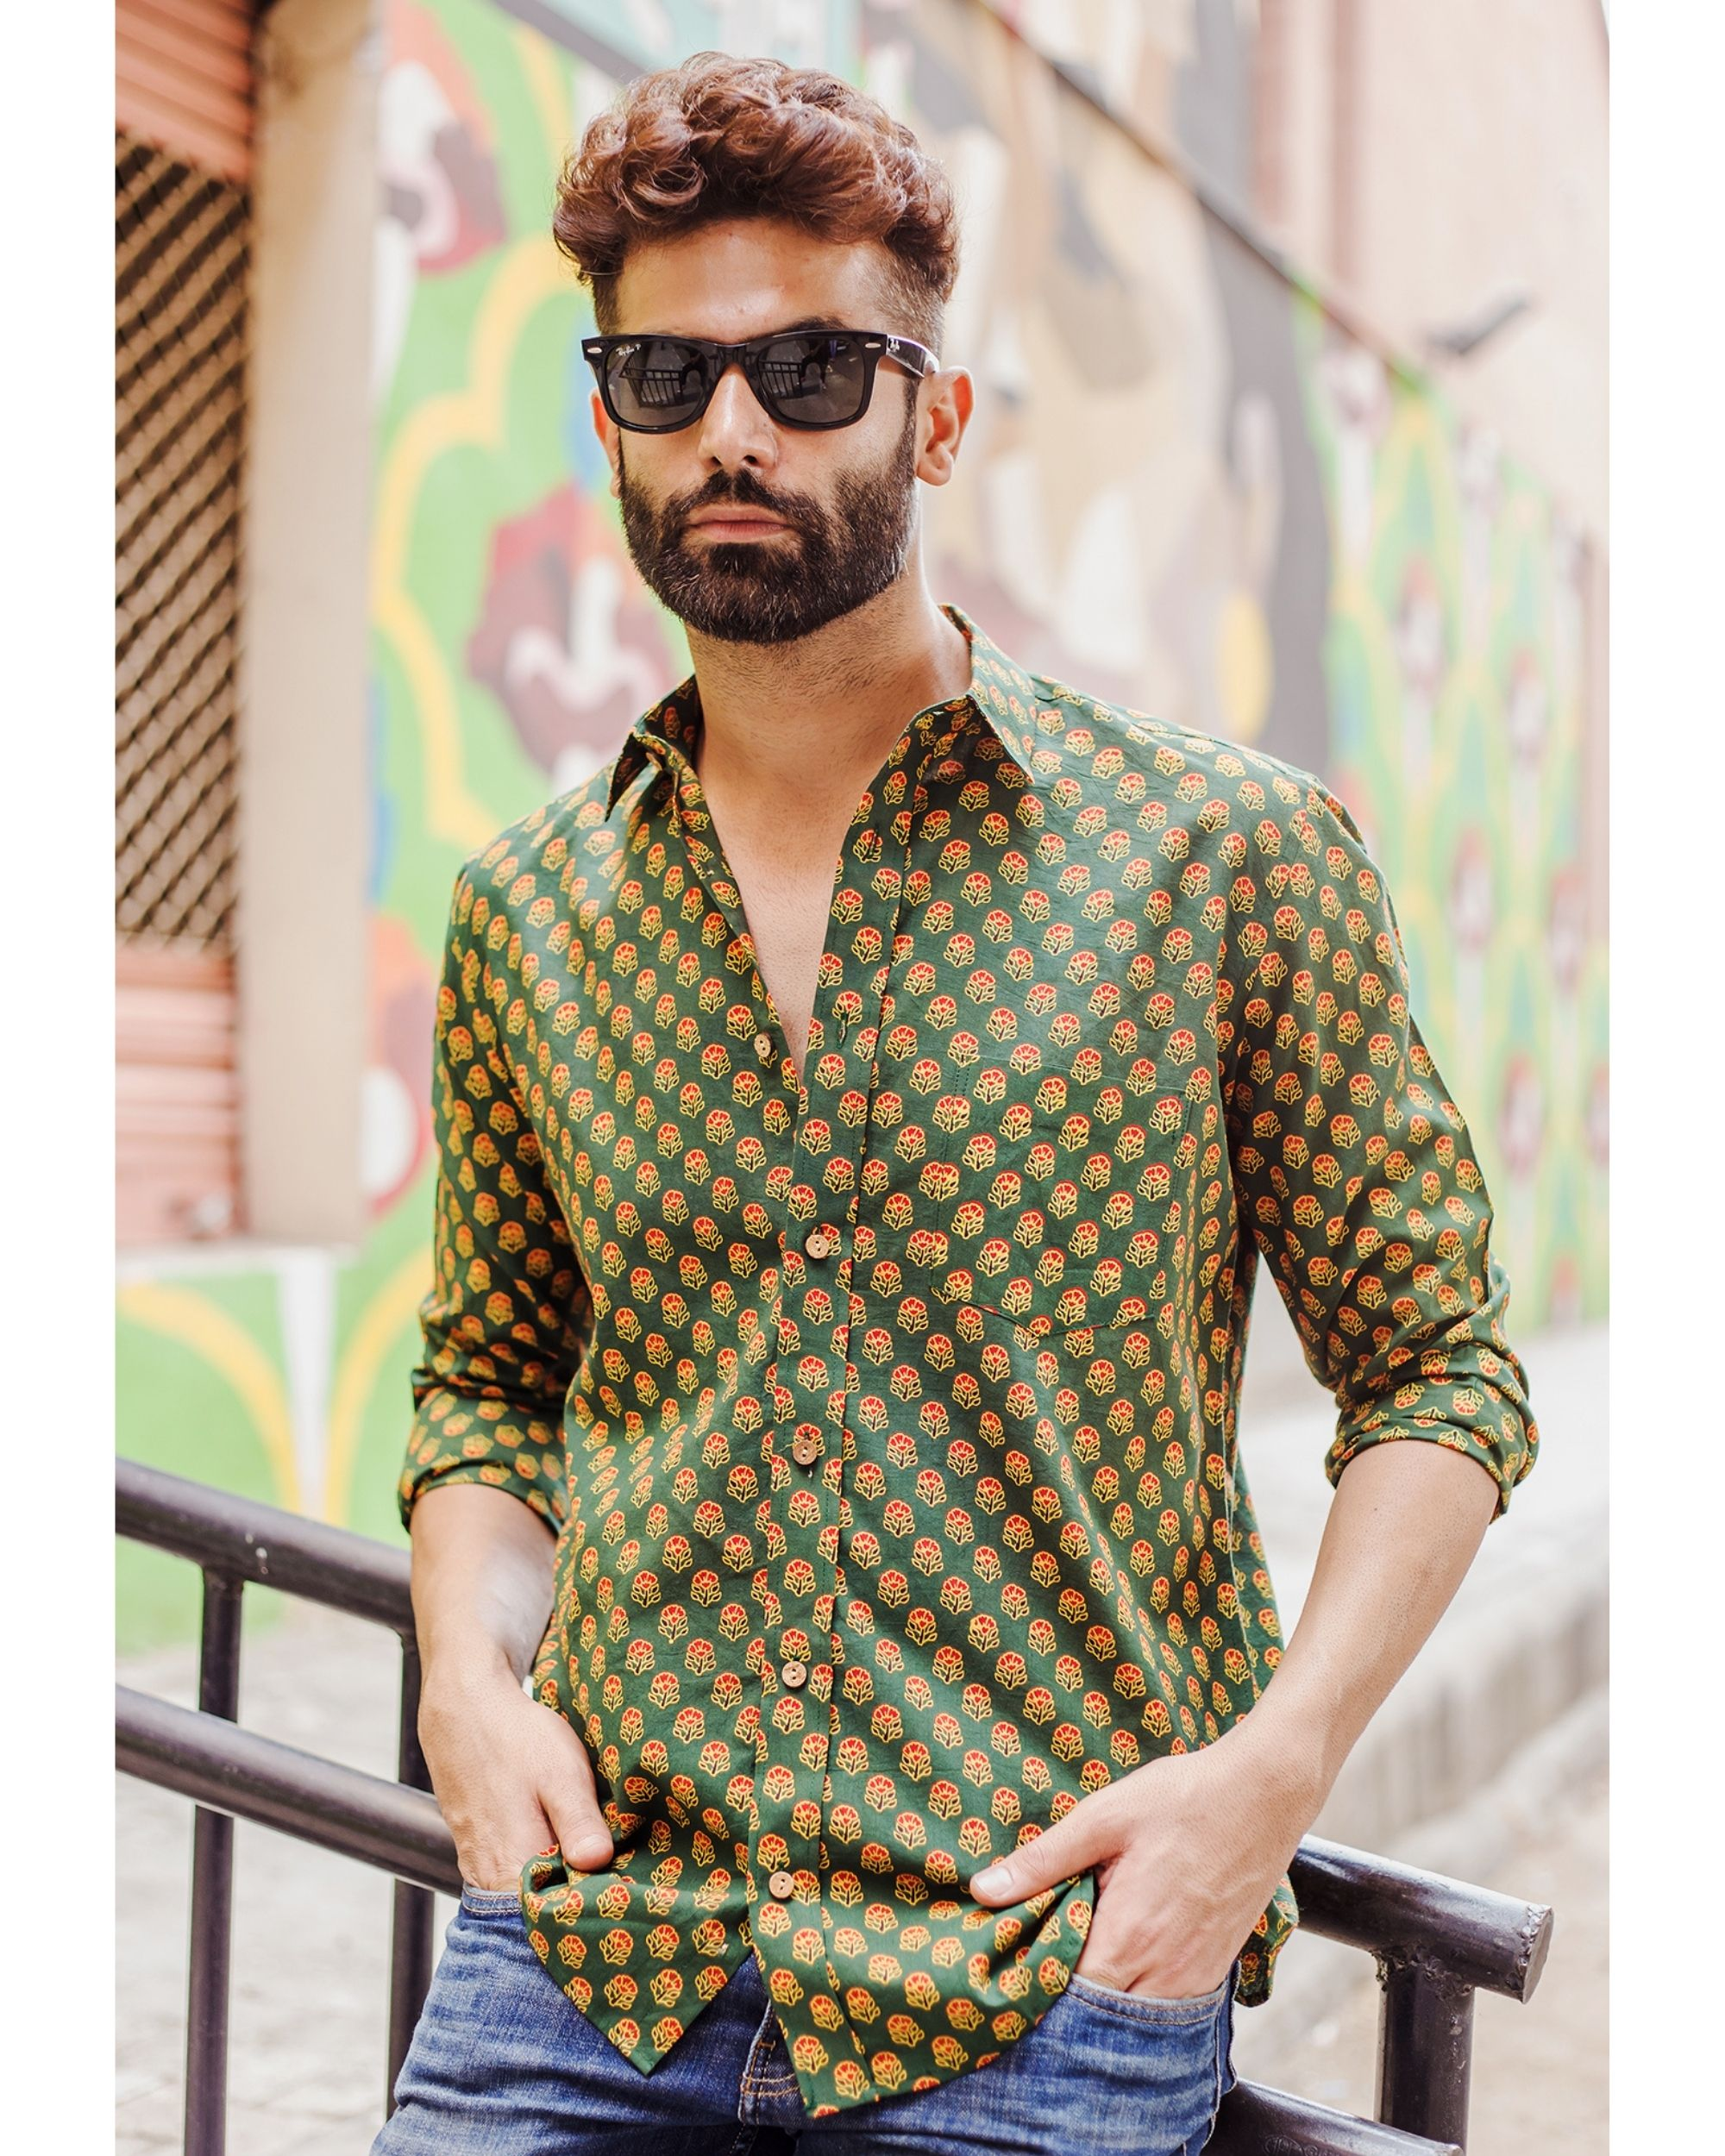 Green and red ajrakh floral printed shirt